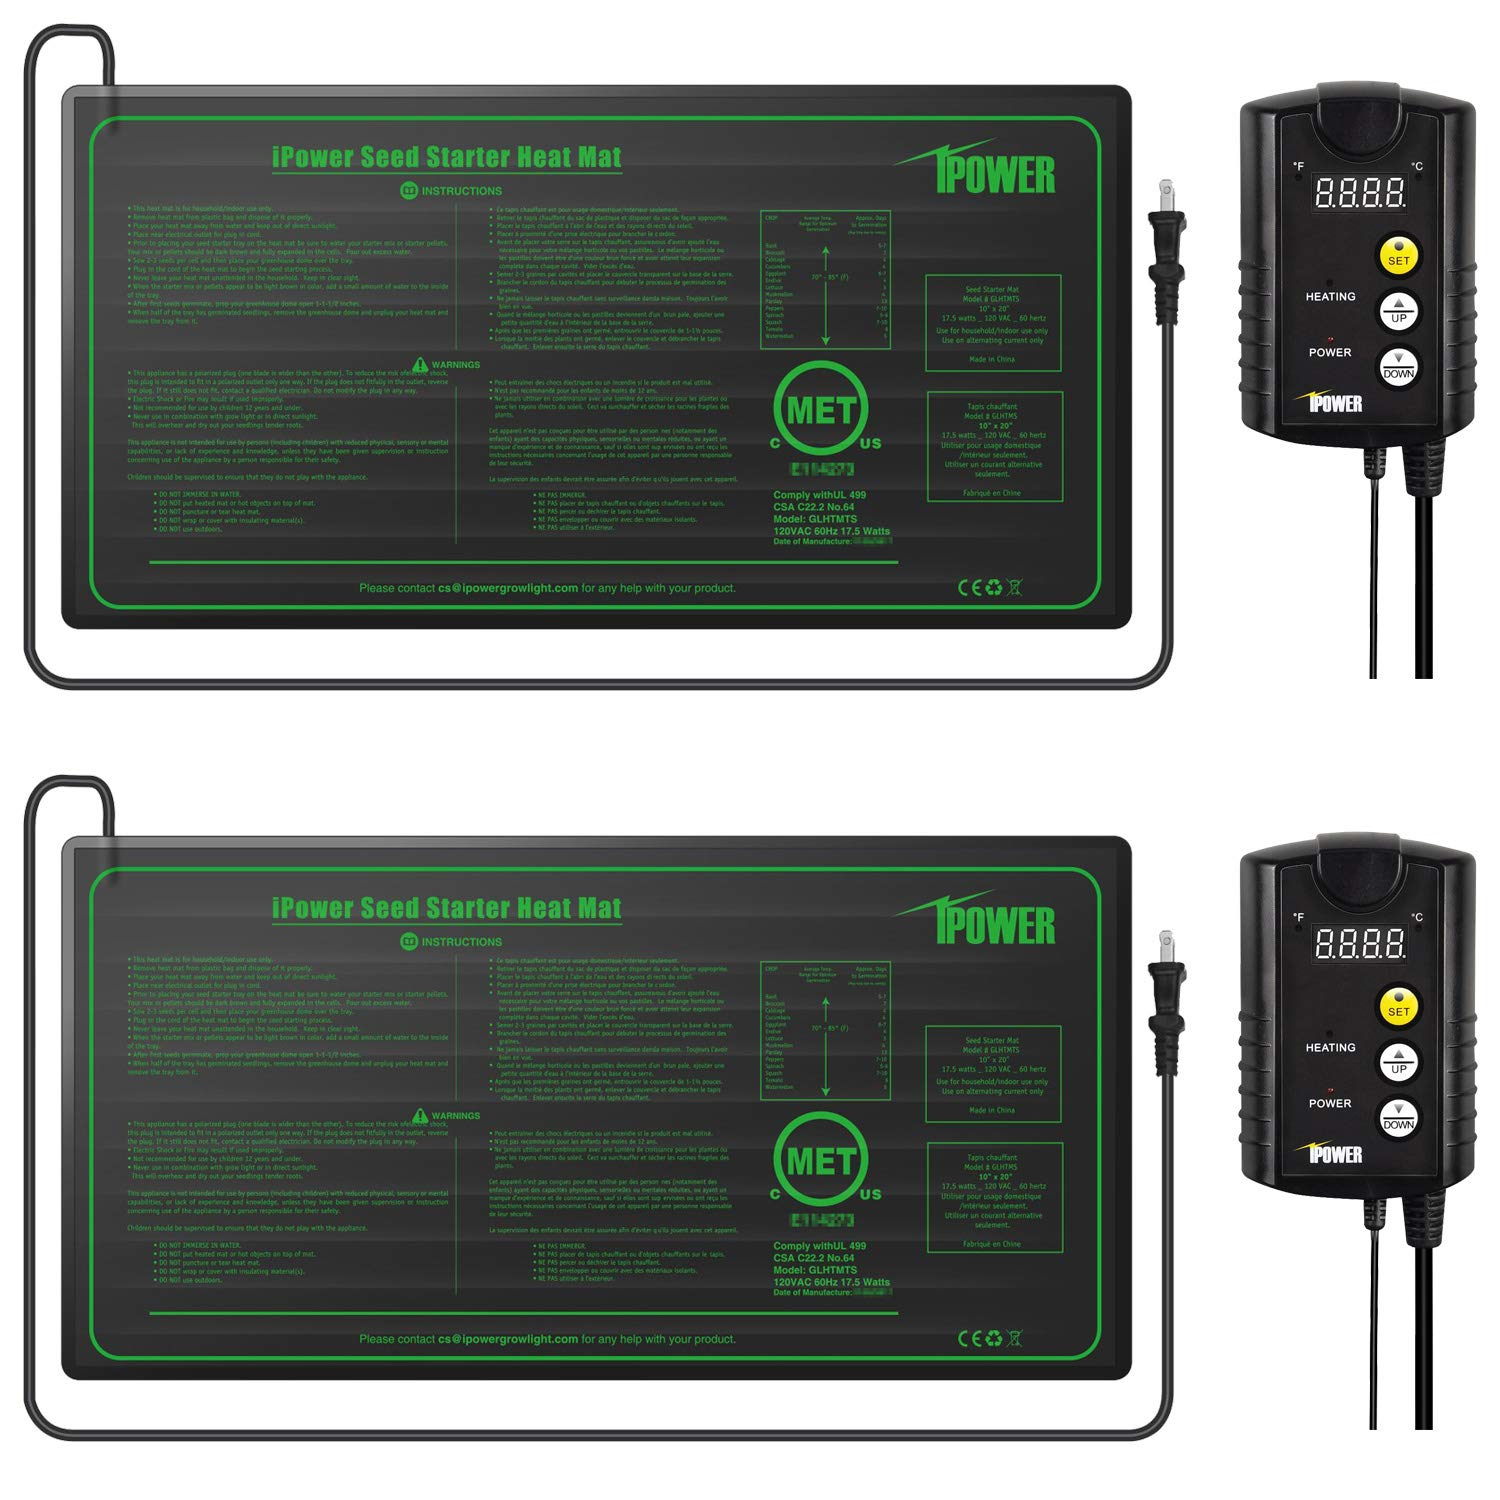 iPower 2 Pack 10'' x 20.5'' Warm Hydroponic Seedling Heat Mat and Digital Thermostat Control Combo Set for Seed Germination, Black by iPower (Image #1)